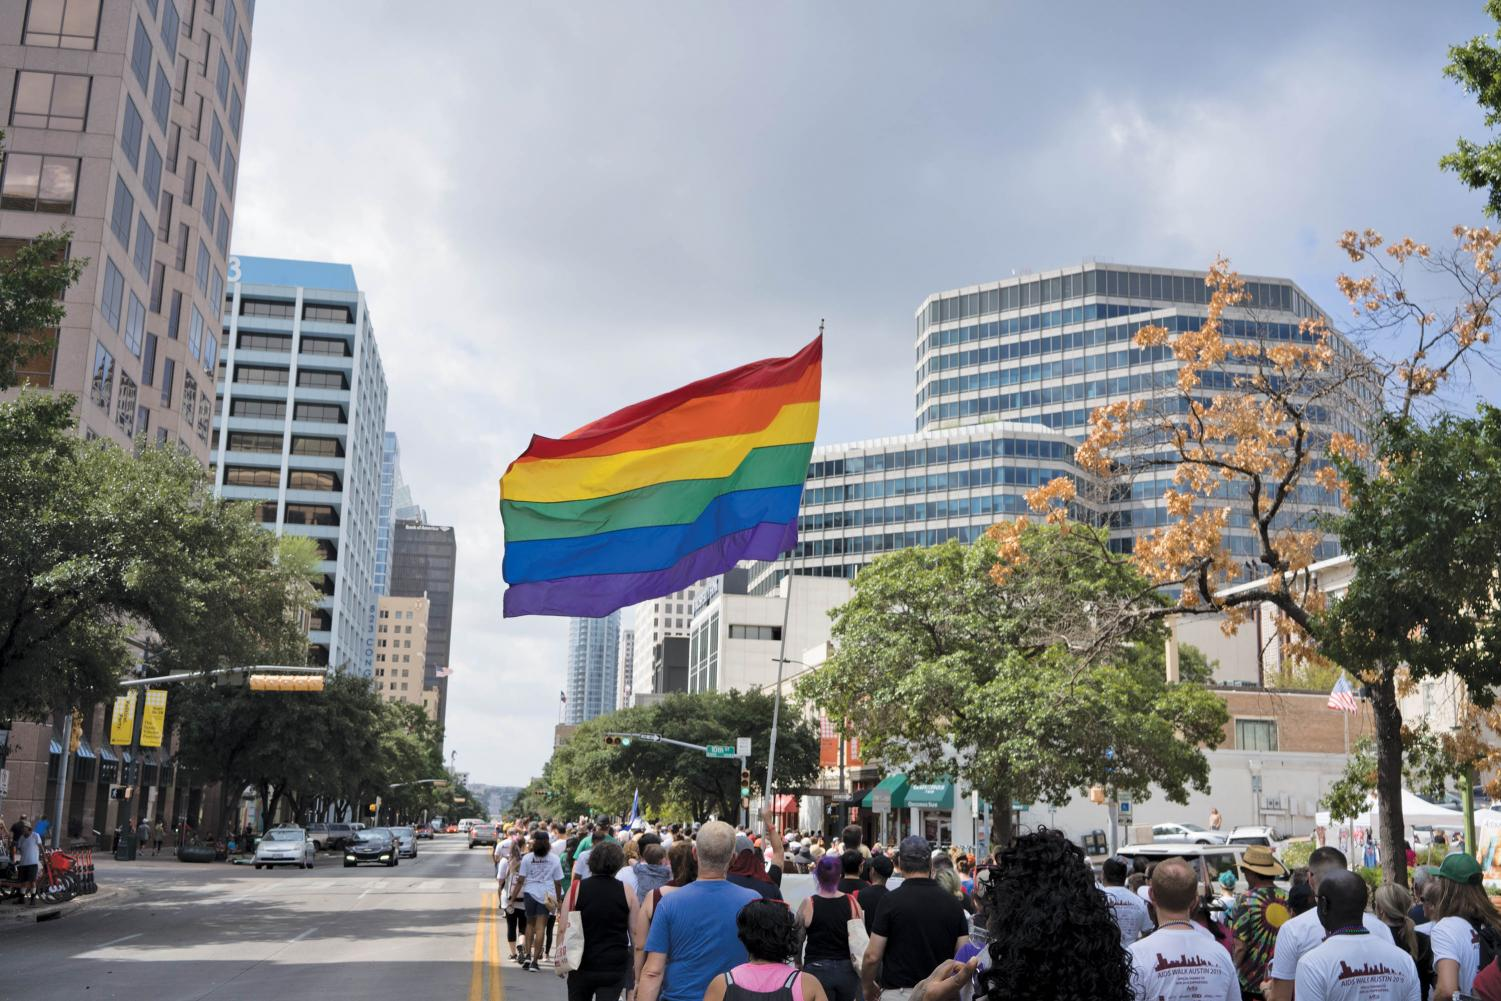 Since 1990, National Bisexuality Awareness Day has been celebrated on September 23.